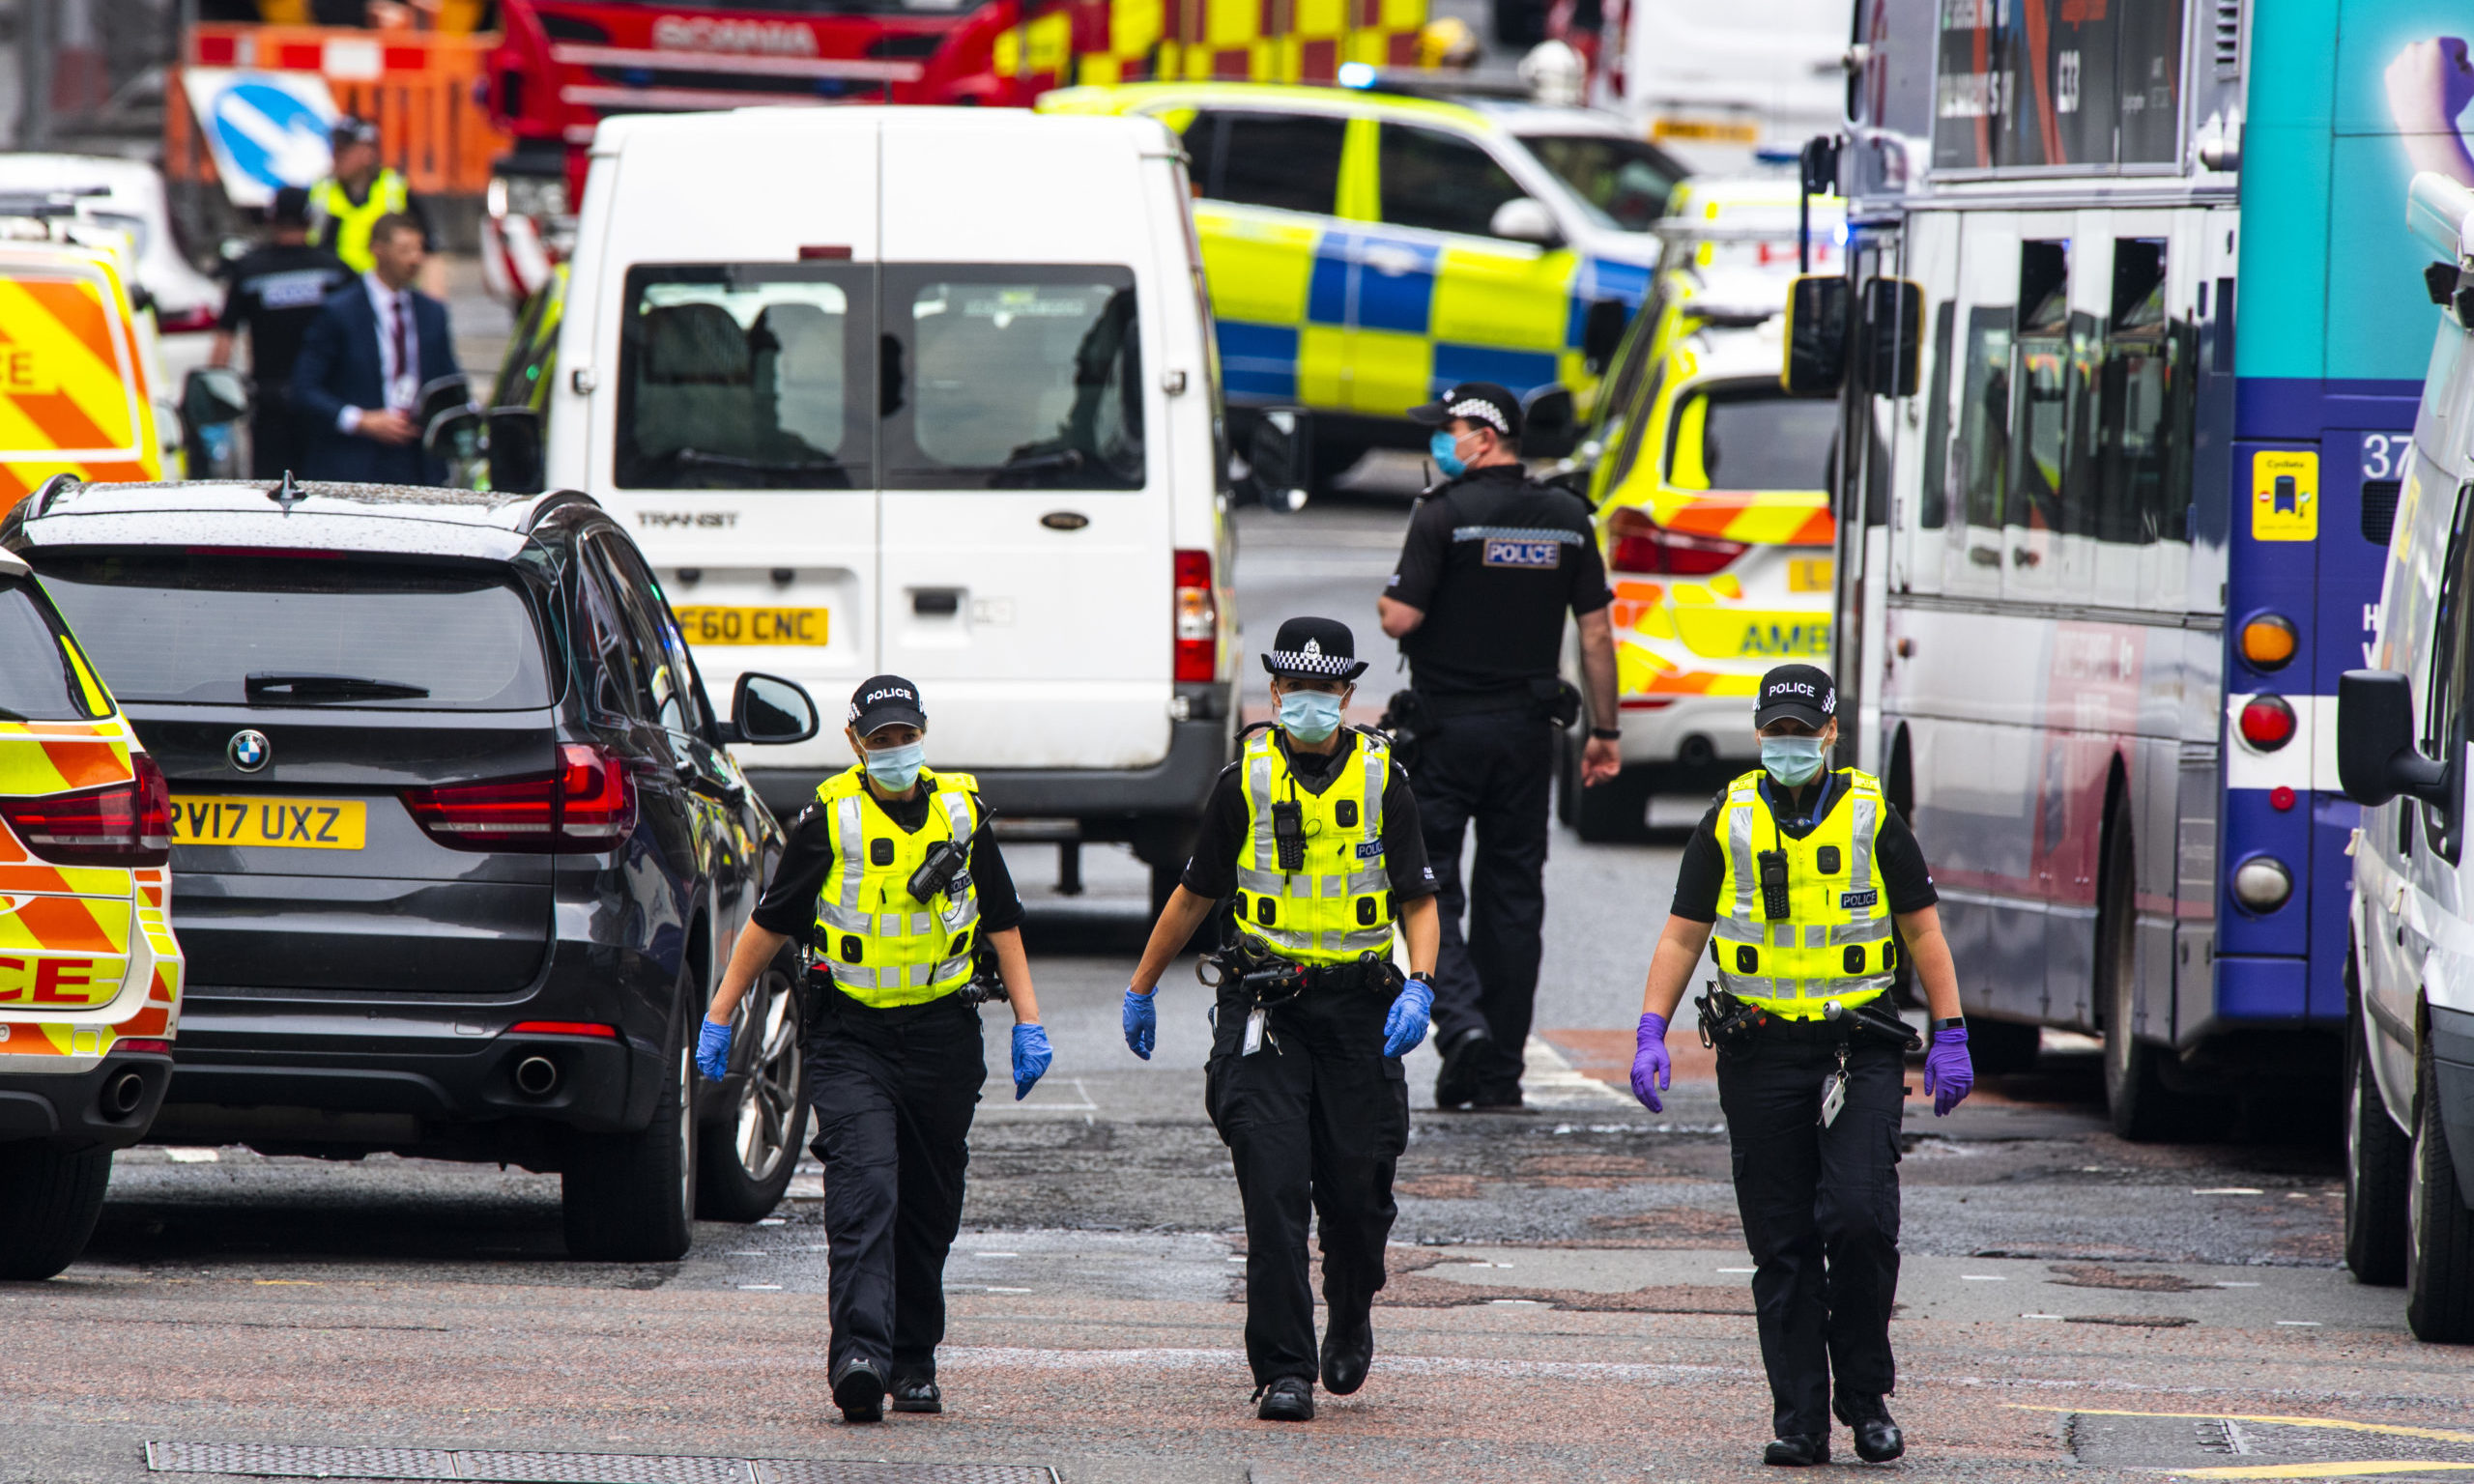 Police respond to a major incident on West George Street on June 26, 2020,  in Glasgow, Scotland.